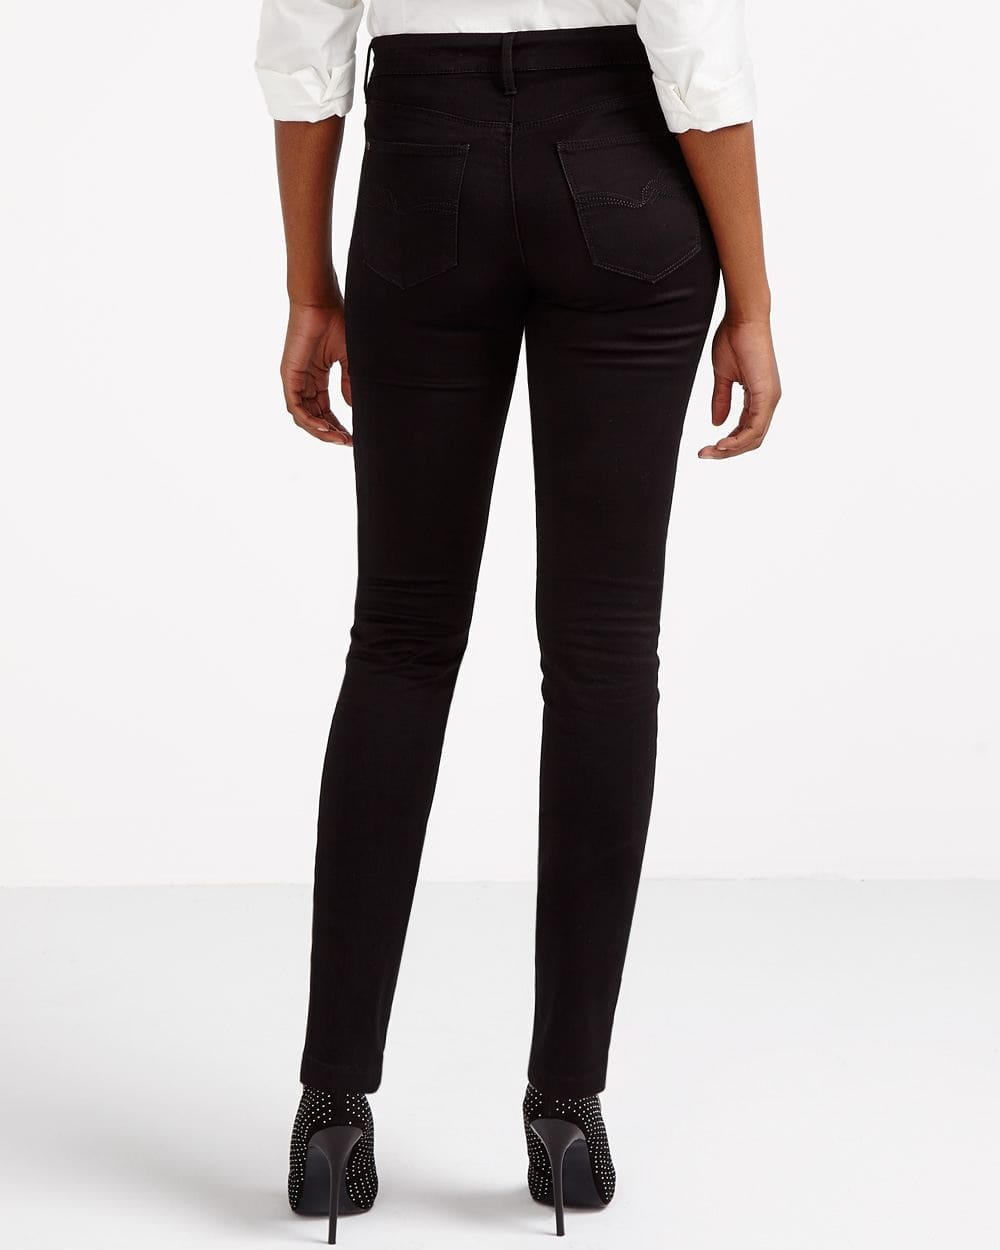 The Signature Soft Skinny Jeans